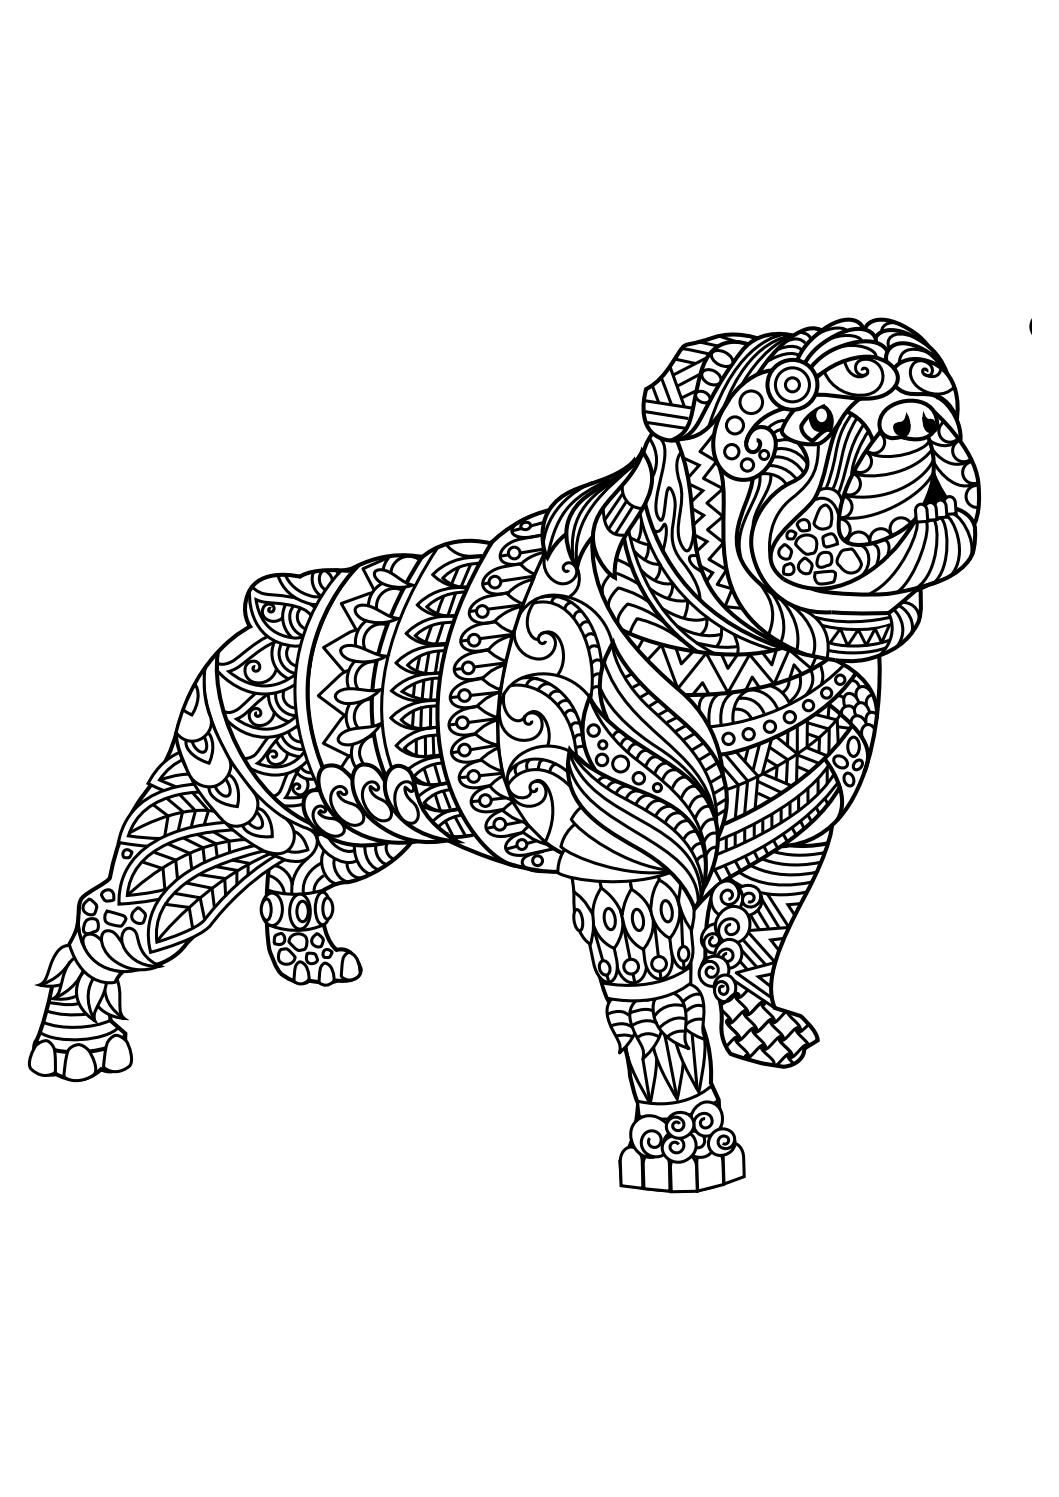 Animal coloring pages pdf Dog coloring page, Animal